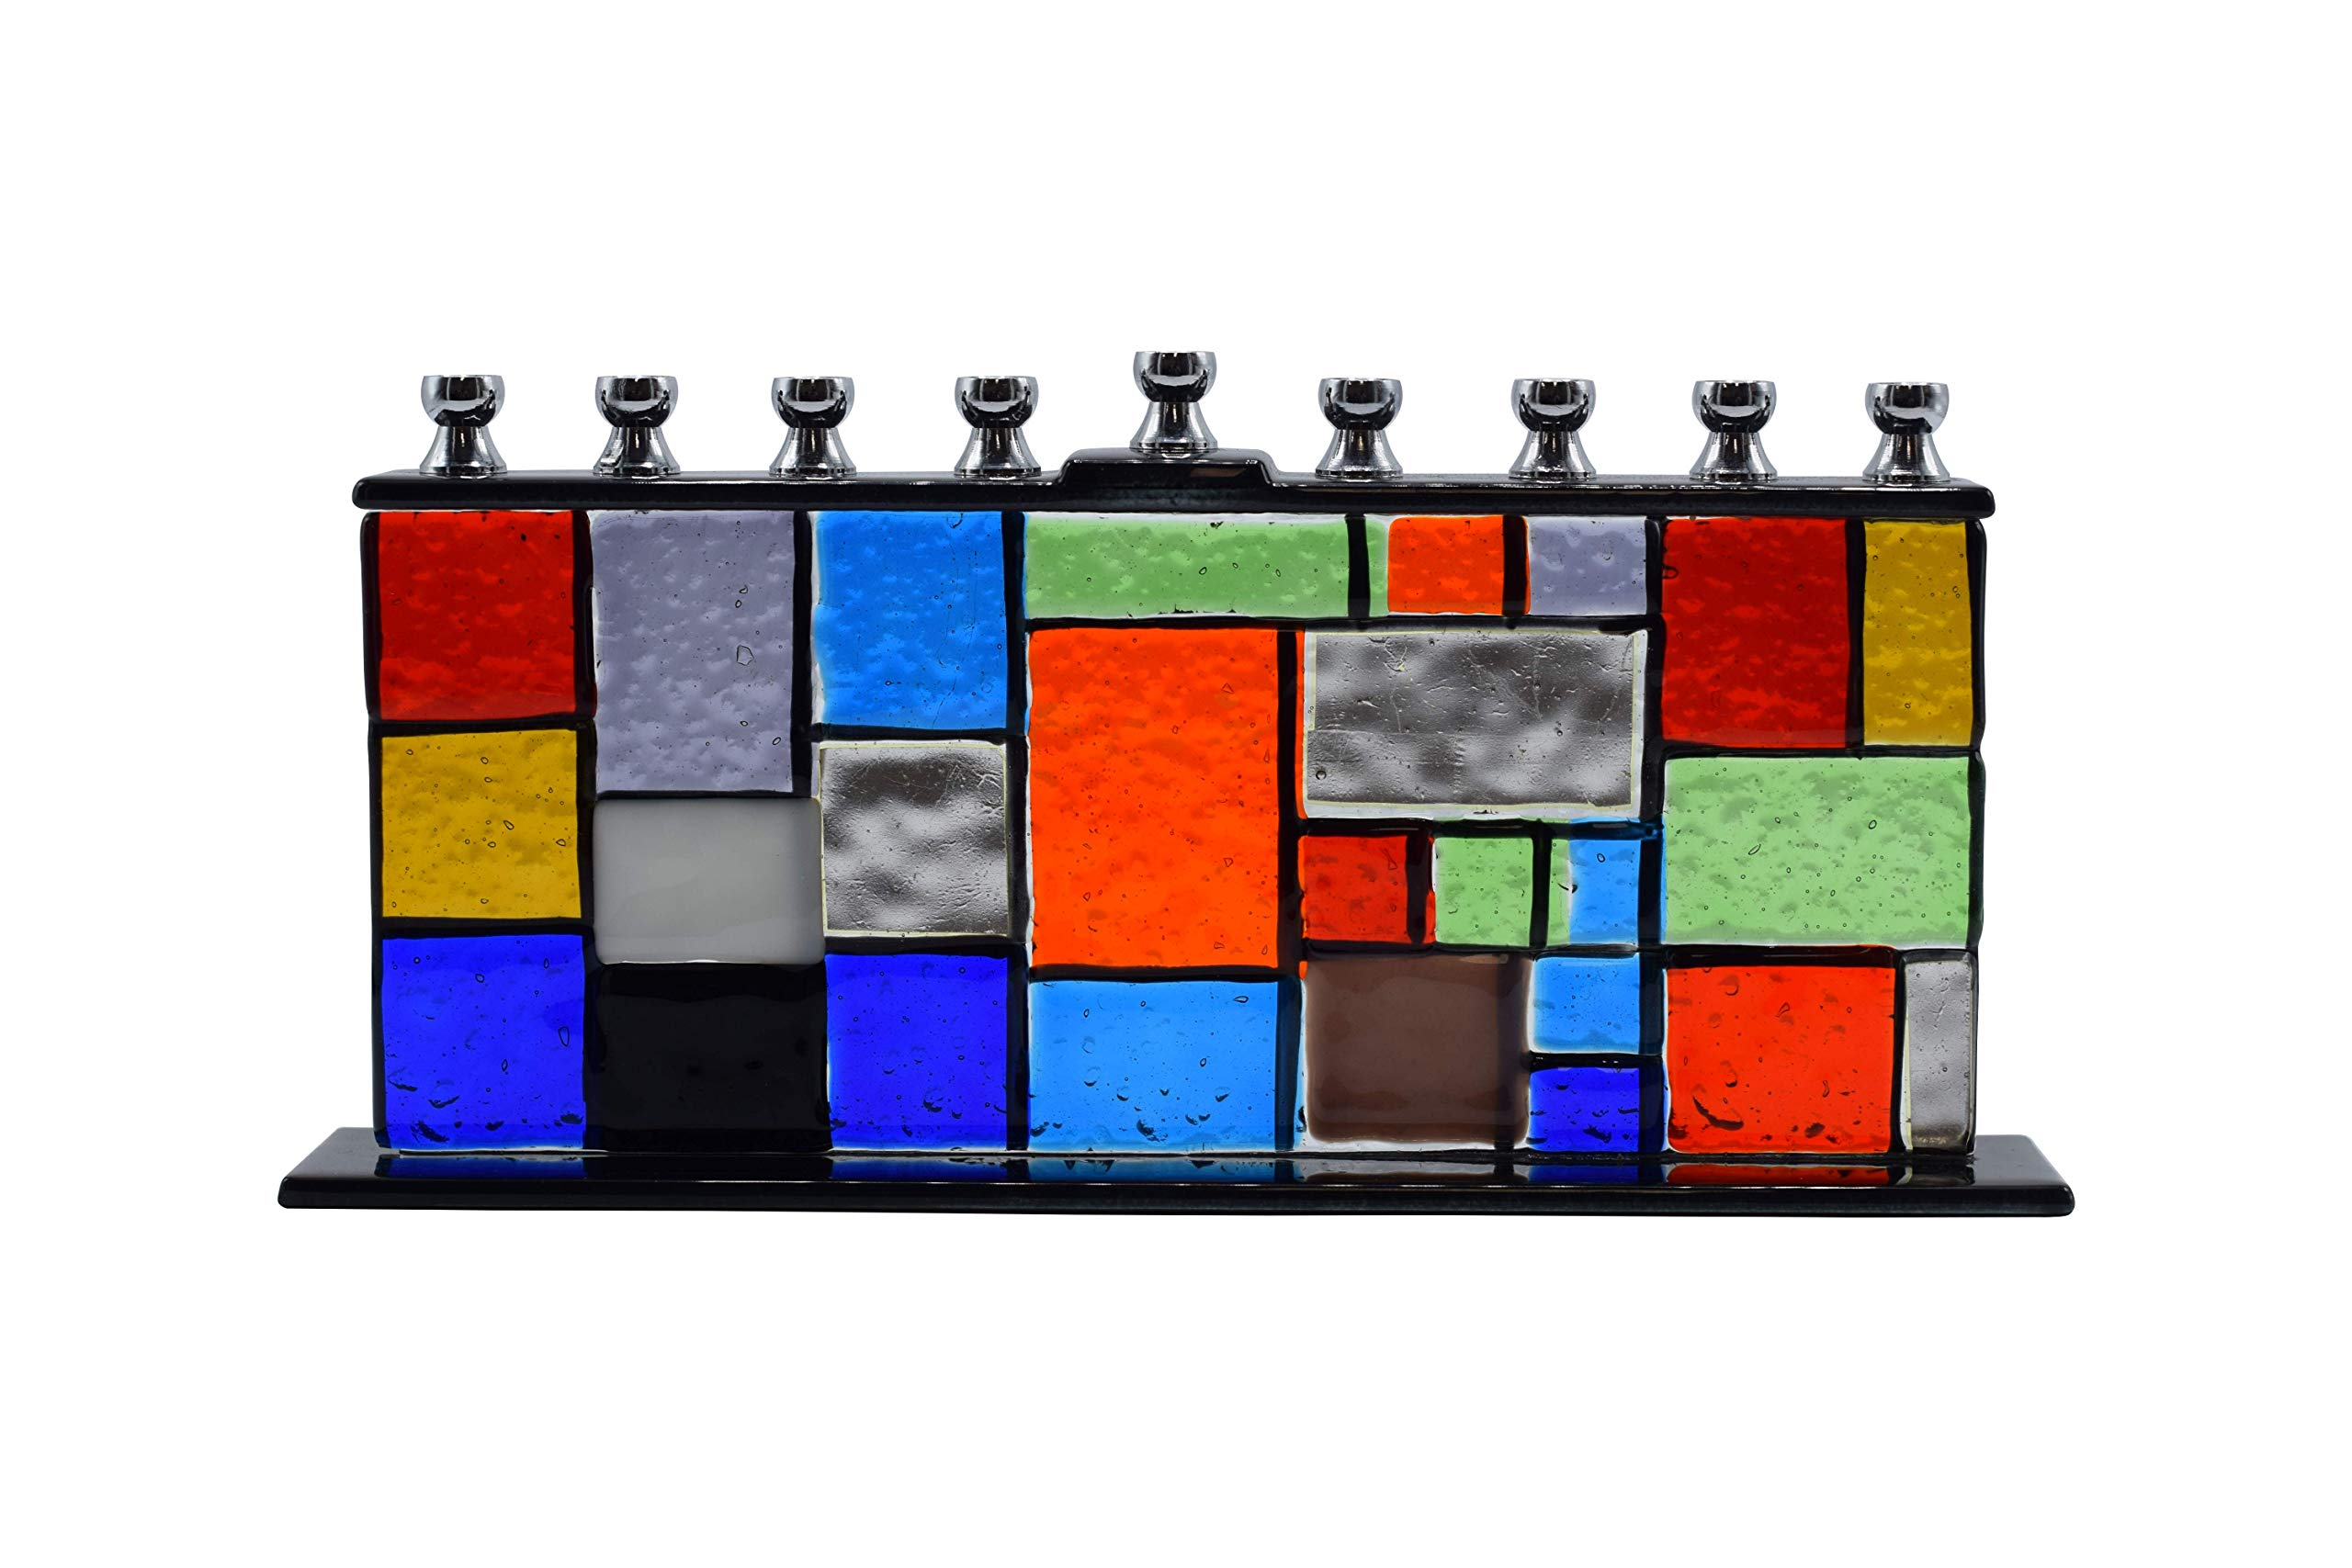 Ner Mitzvah Glass Candle Menorah - Fits All Standard Chanukah Candles - Handcrafted ''Hands of Unity'' Glass Painted Hanukkah Menorah by Ner Mitzvah